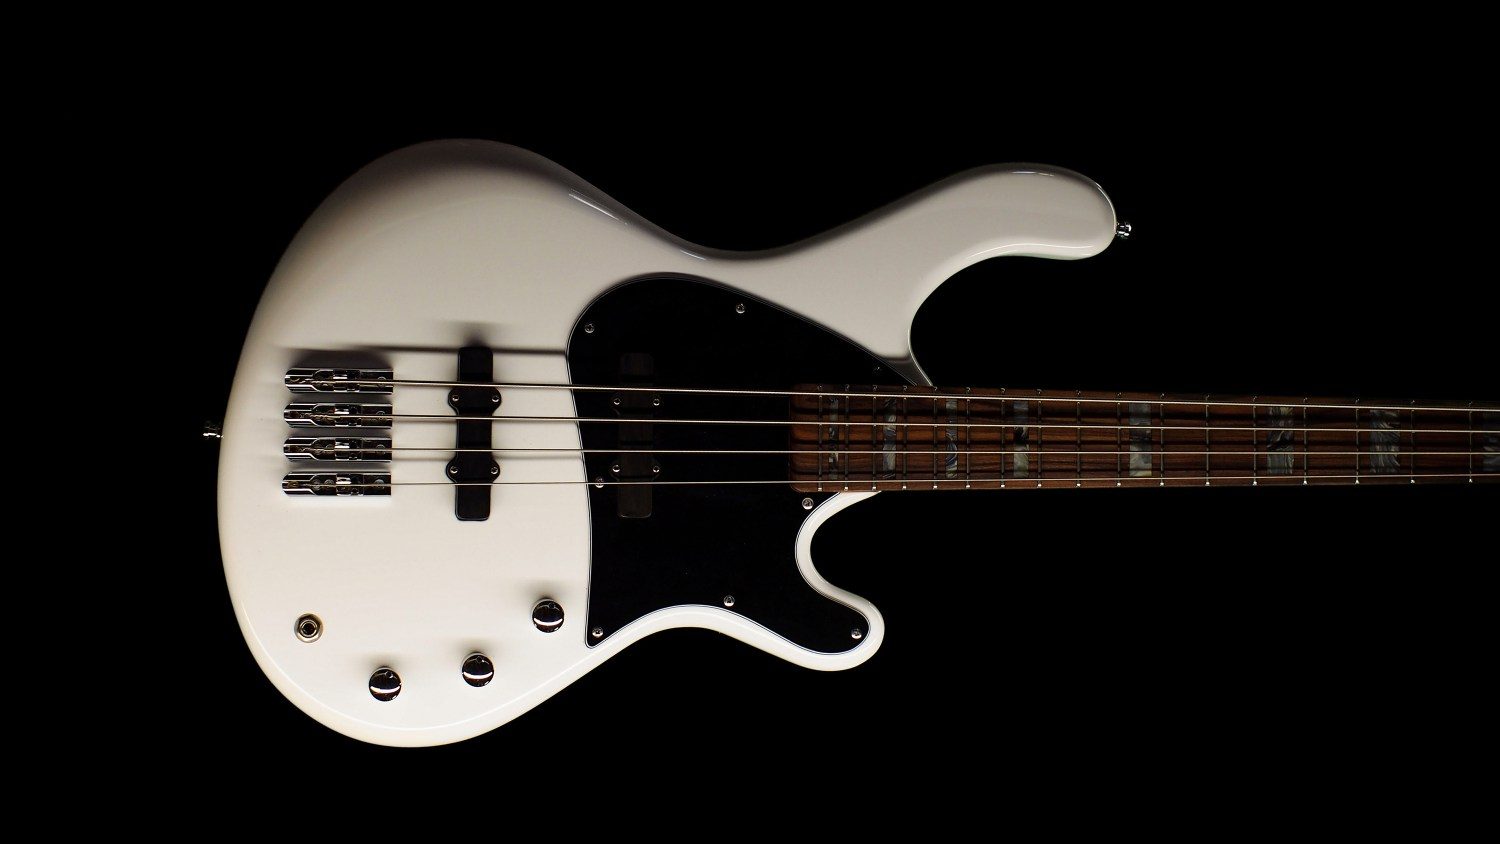 Roks Instruments Nardis Bass Hawthorn White Body